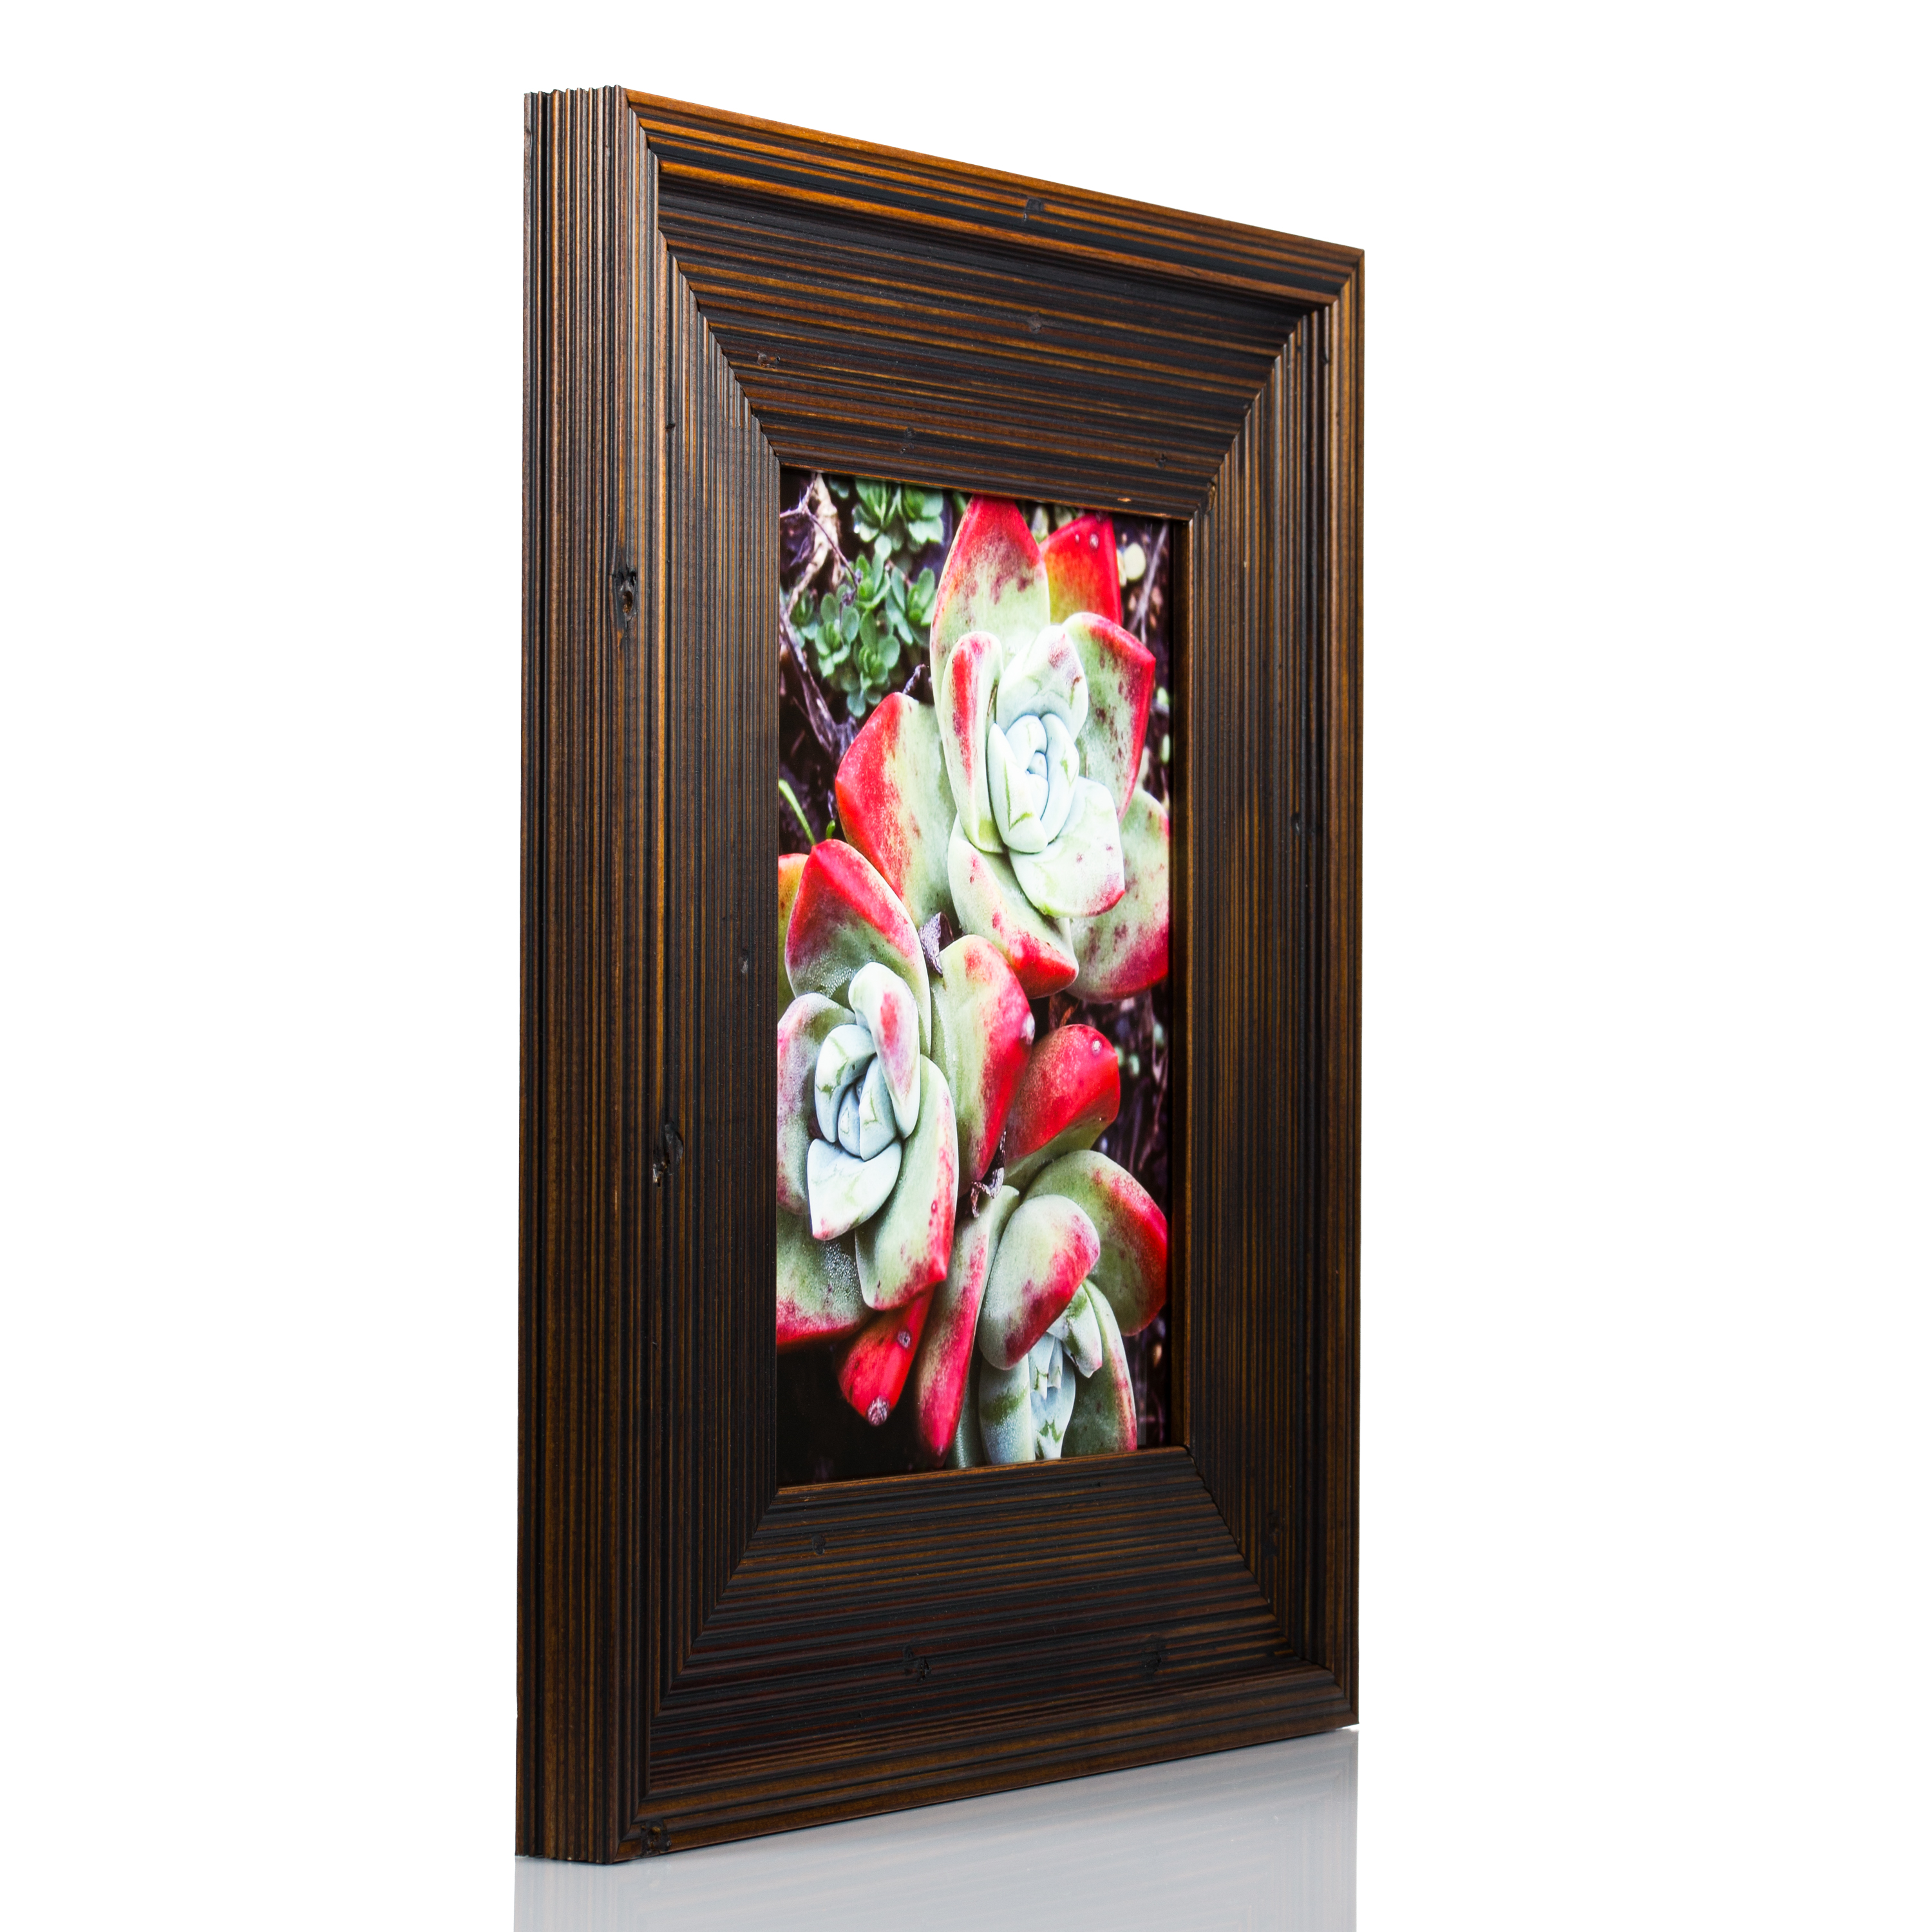 Craig frames rustic barnwood 3 dark brown solid wood picture 76602475 frame height jeuxipadfo Image collections